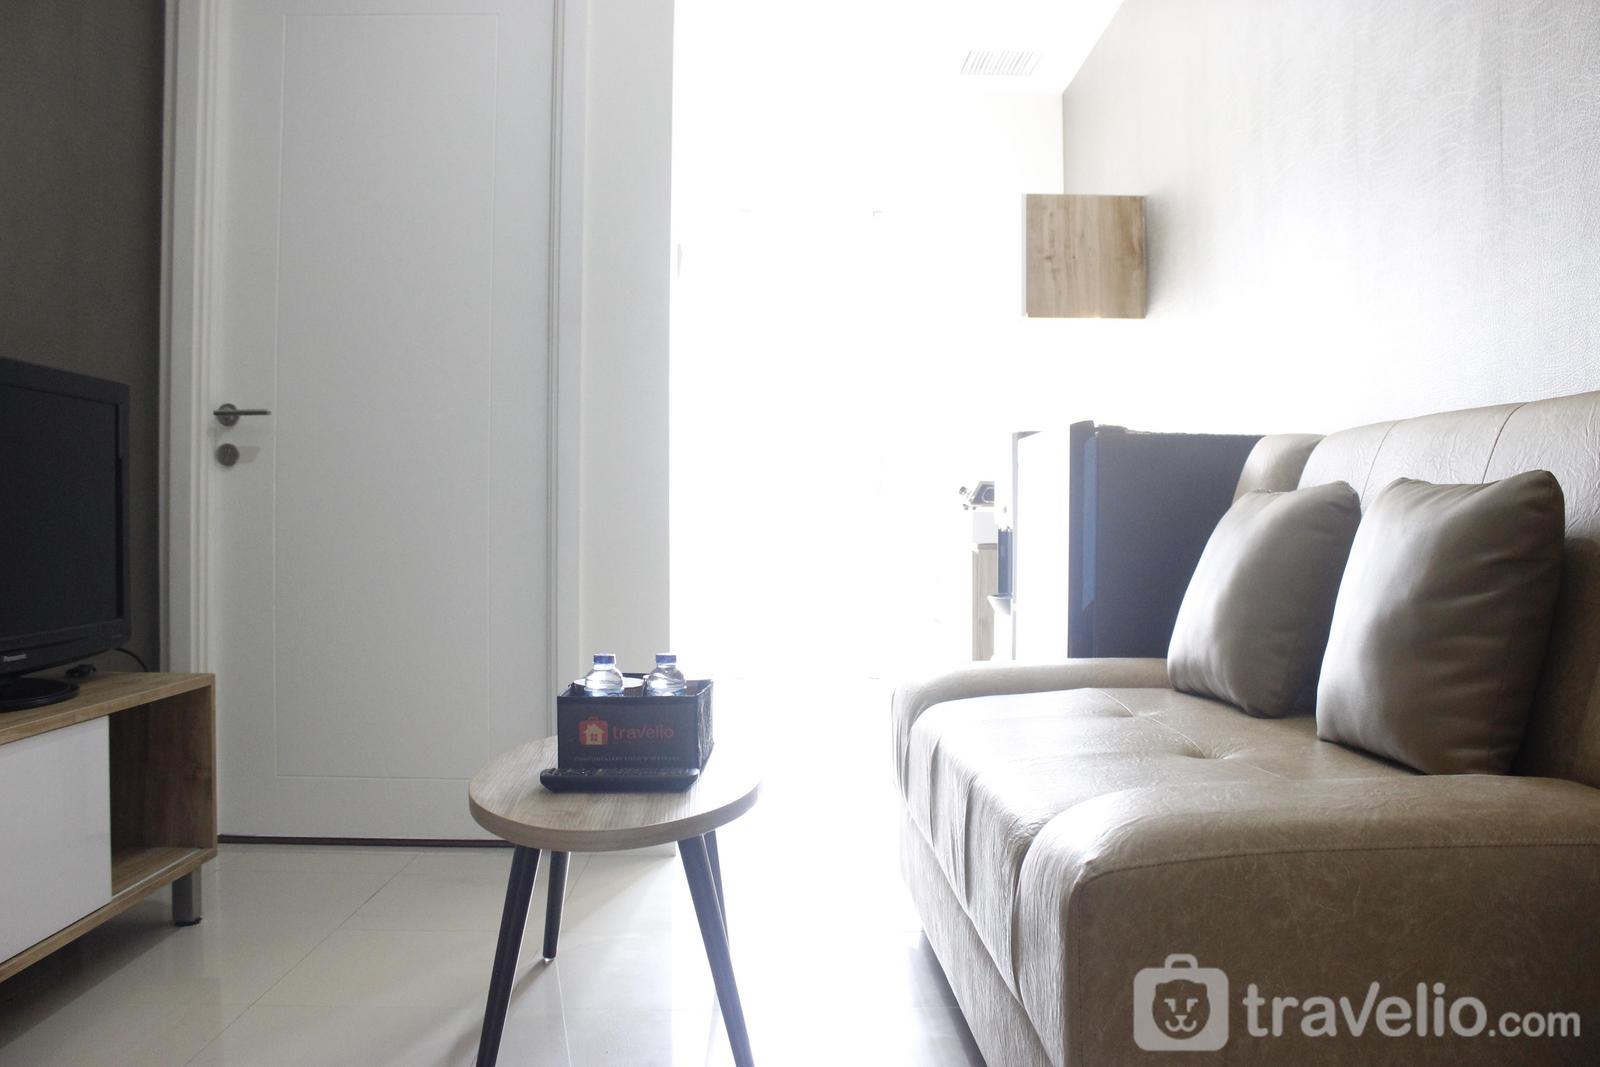 Parahyangan Residence - Private 1BR Apartment Parahyangan Residence With Mountain View By Travelio